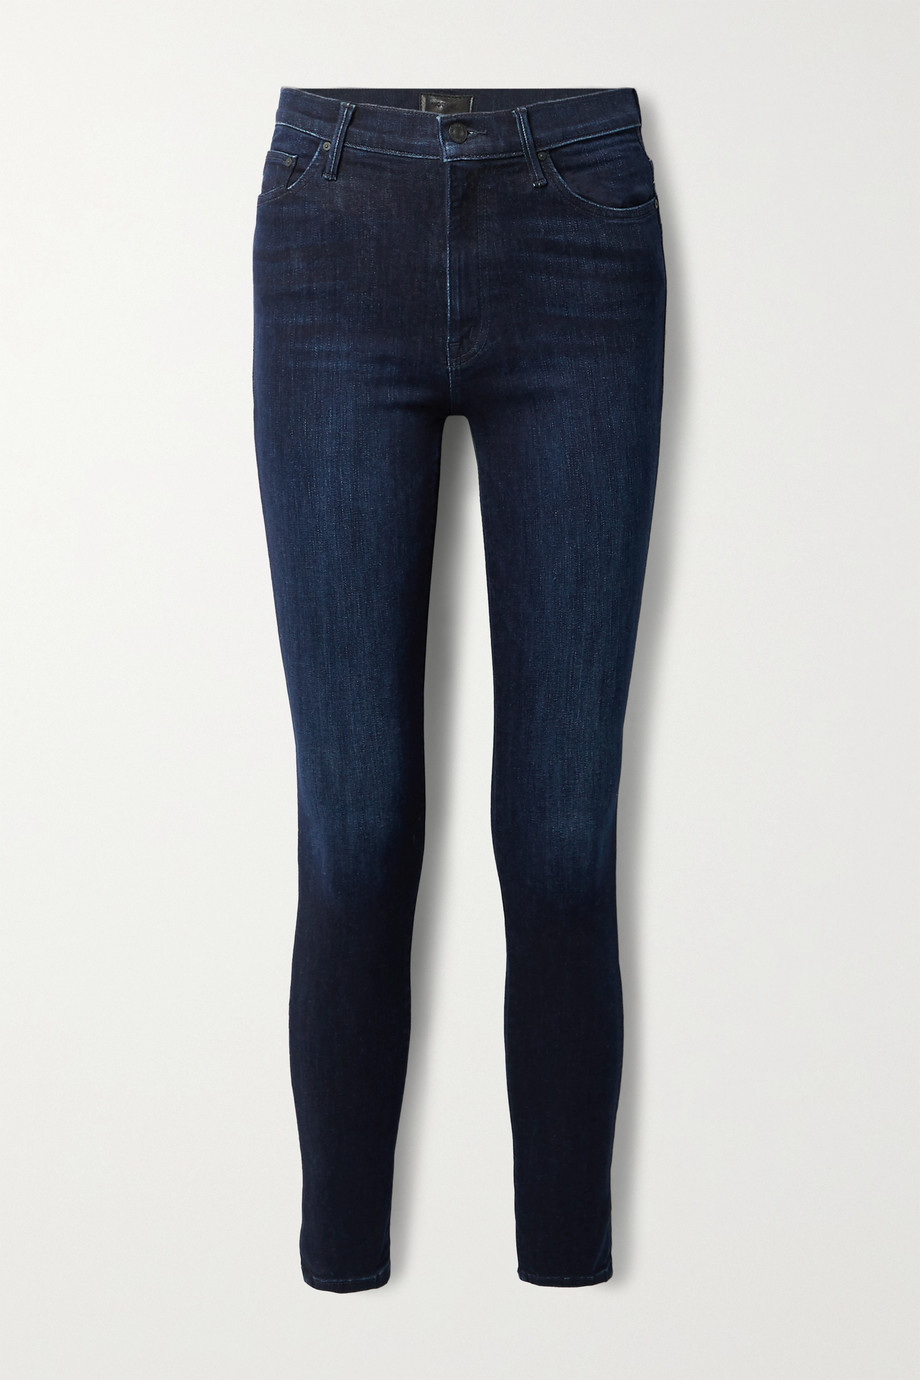 MOTHER The Super Swooner high-rise skinny jeans